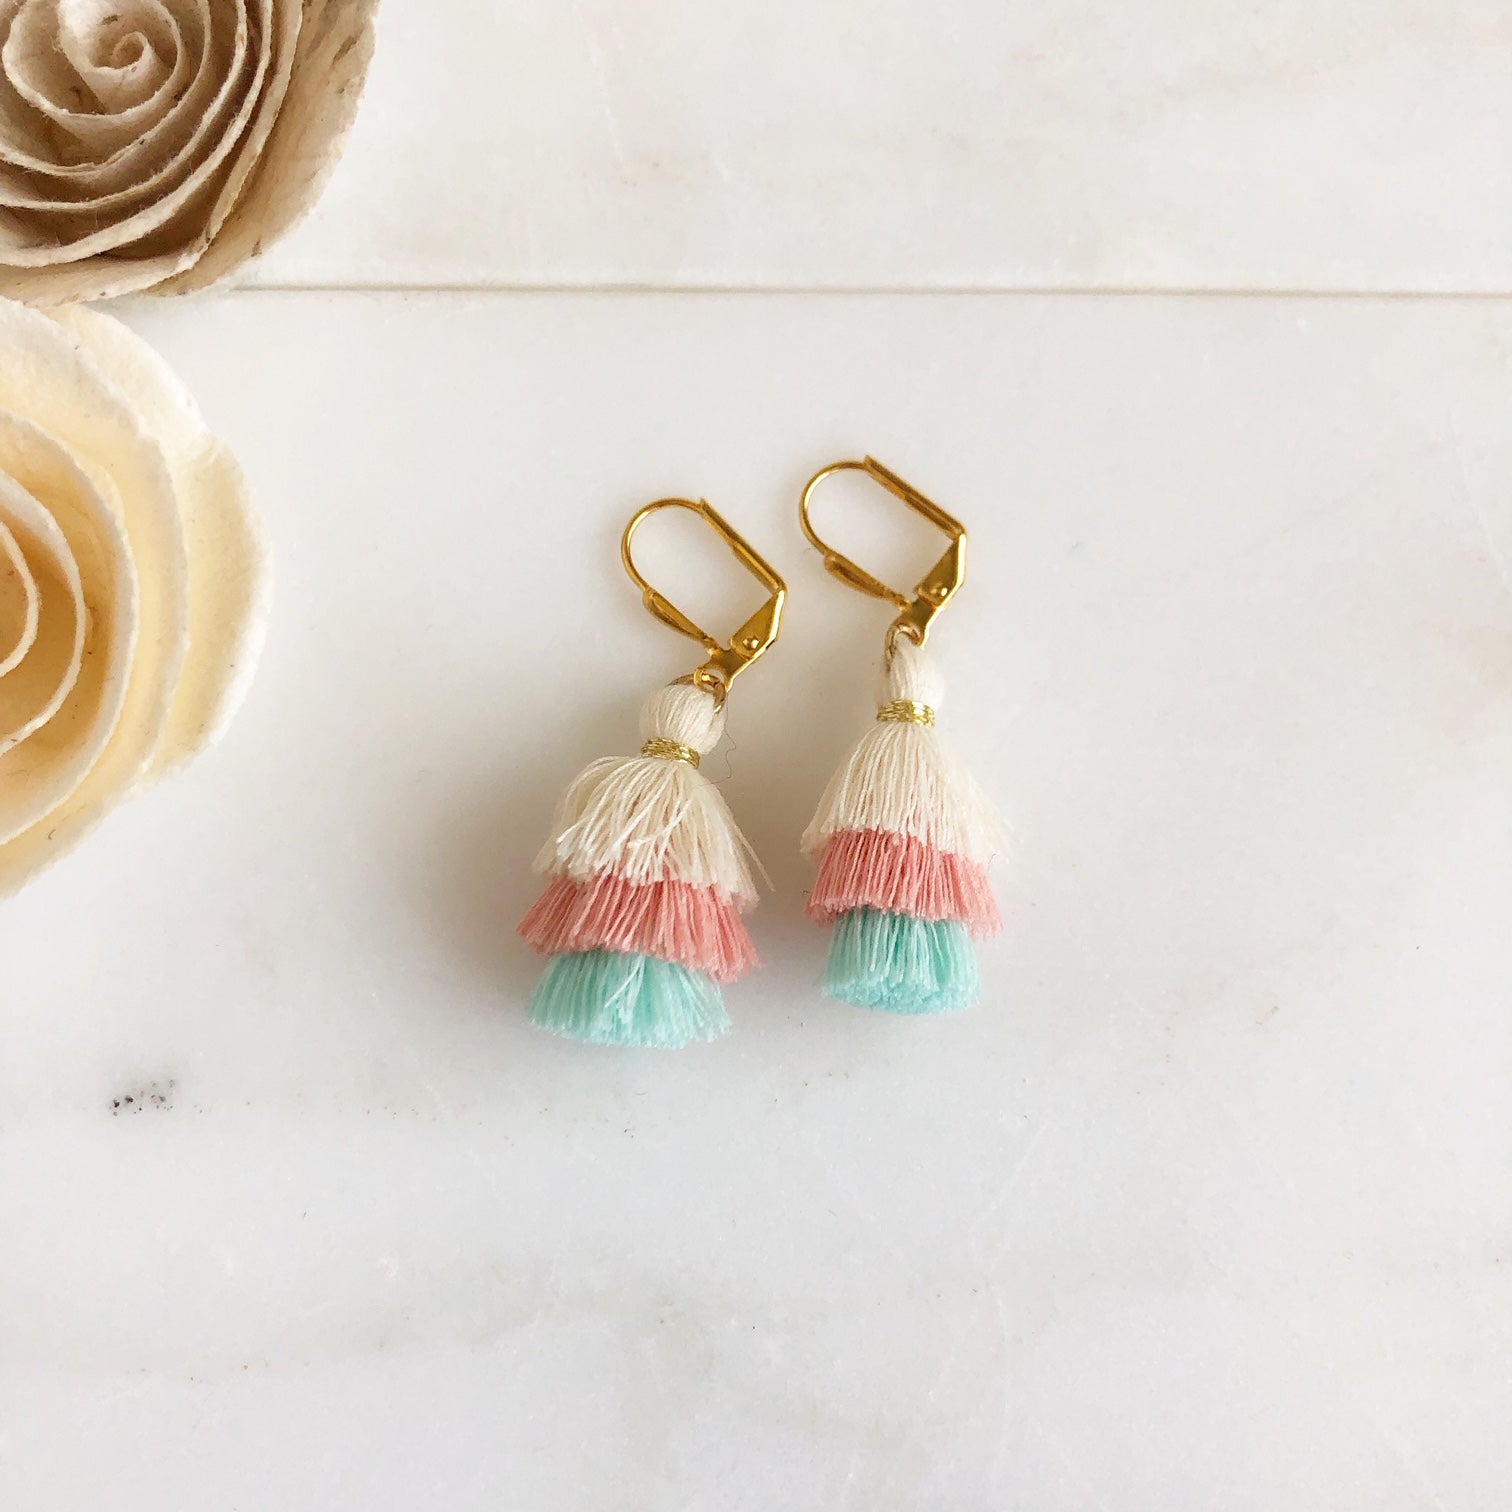 Cute Puffy Dangle Earrings in Pastel Pink Blue and Cream. Tassel Earrings. Sweet Jewelry Gift.